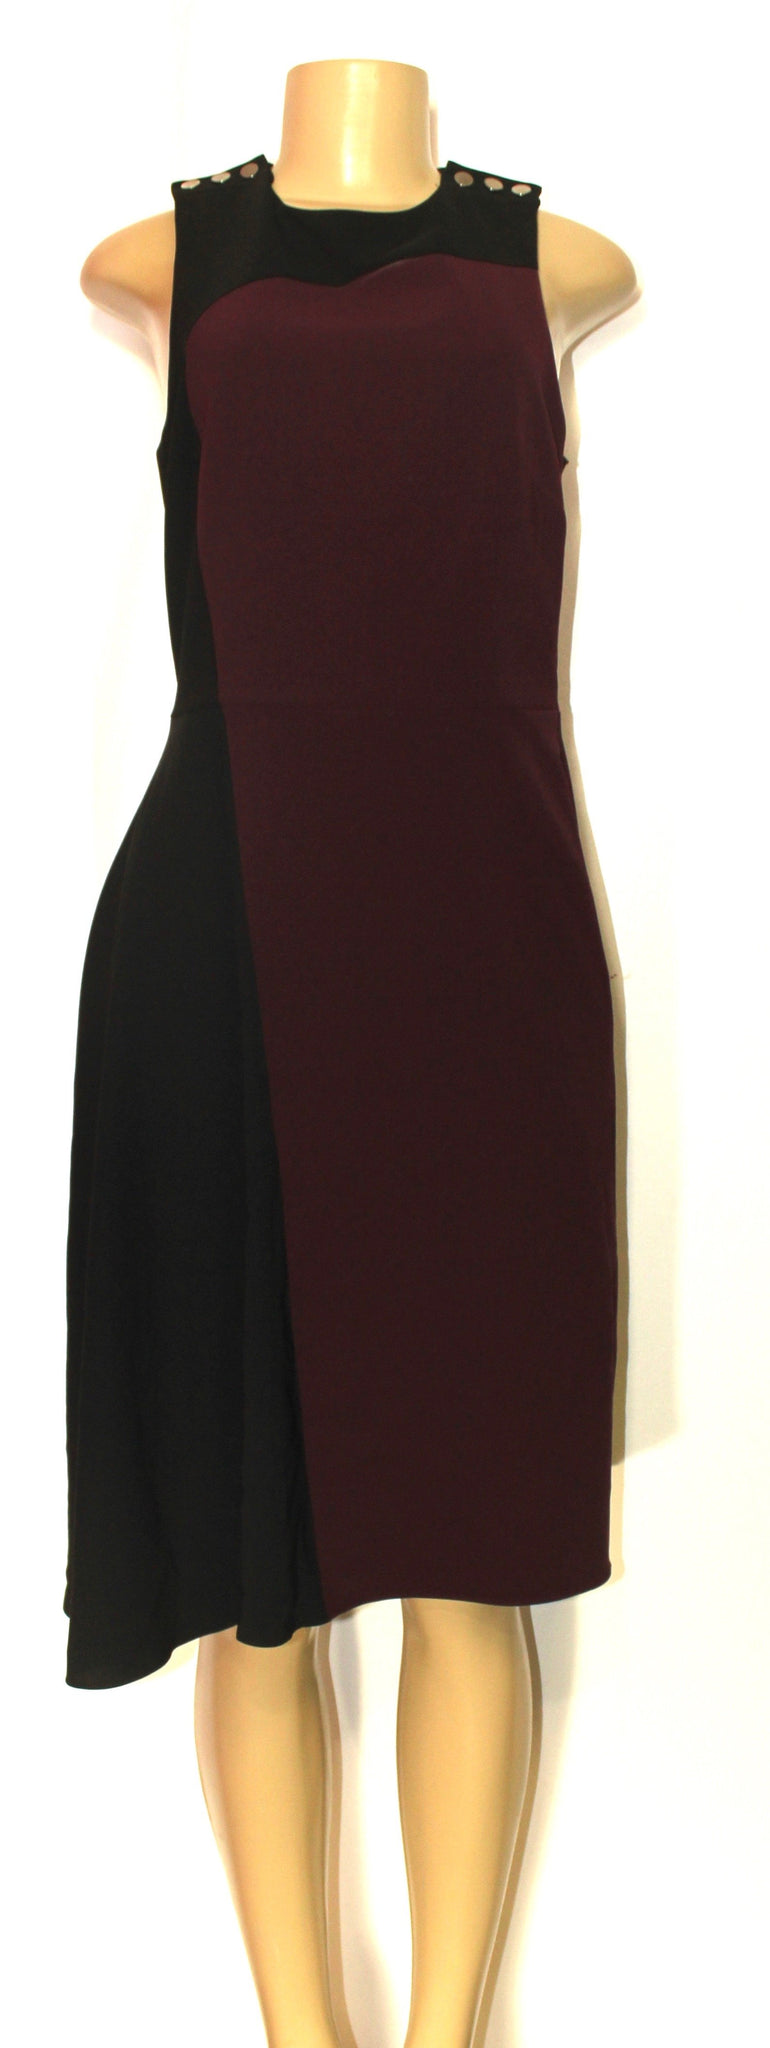 Parker Black And Burgundy Fit And Flare Dress - Size Small - New From Designer